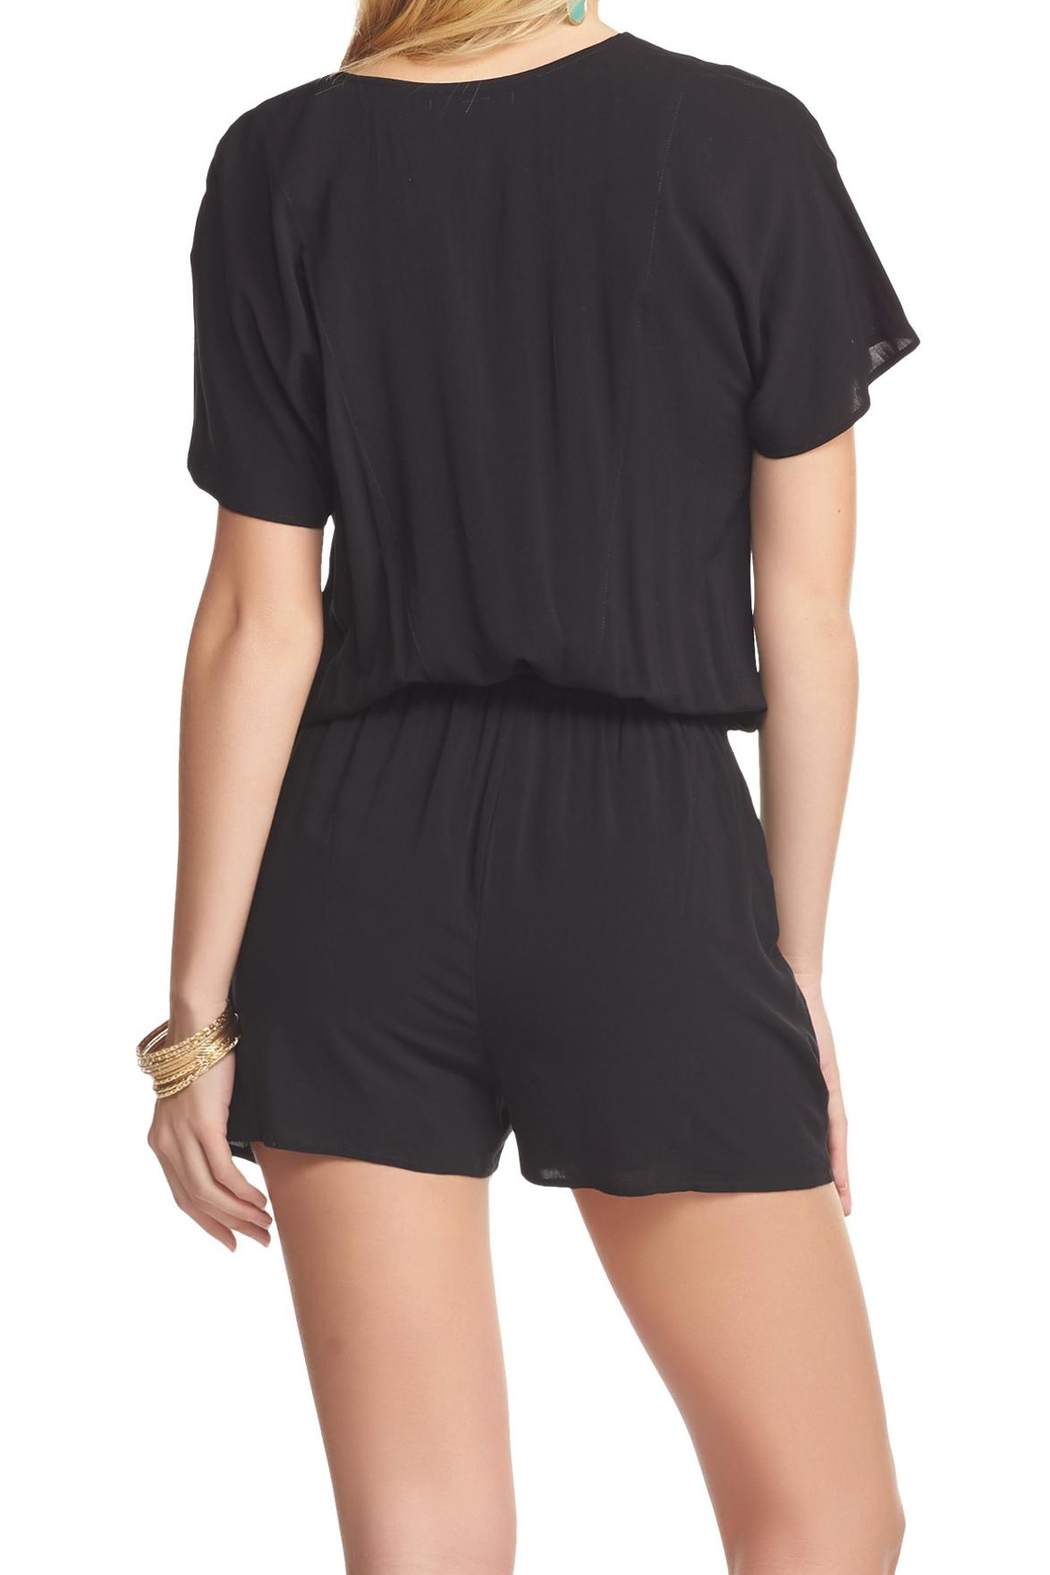 Tart Collections Black Romper - Front Full Image